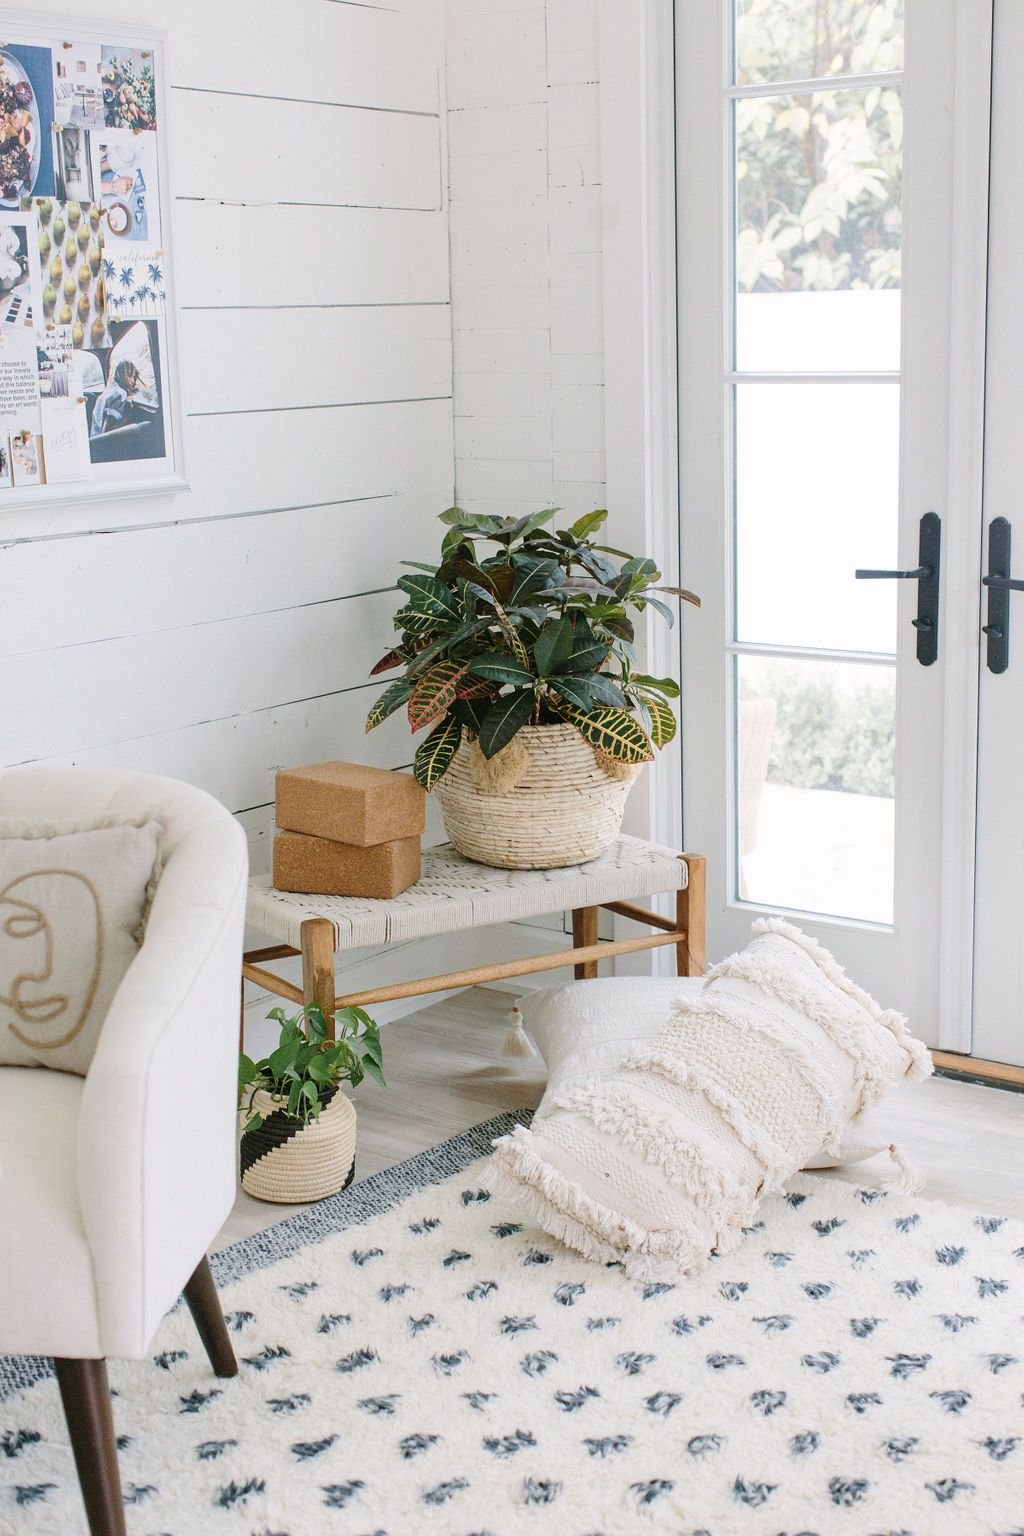 5 Tips for Creating a Calmer Workspace, From Design Pro Camille Styles